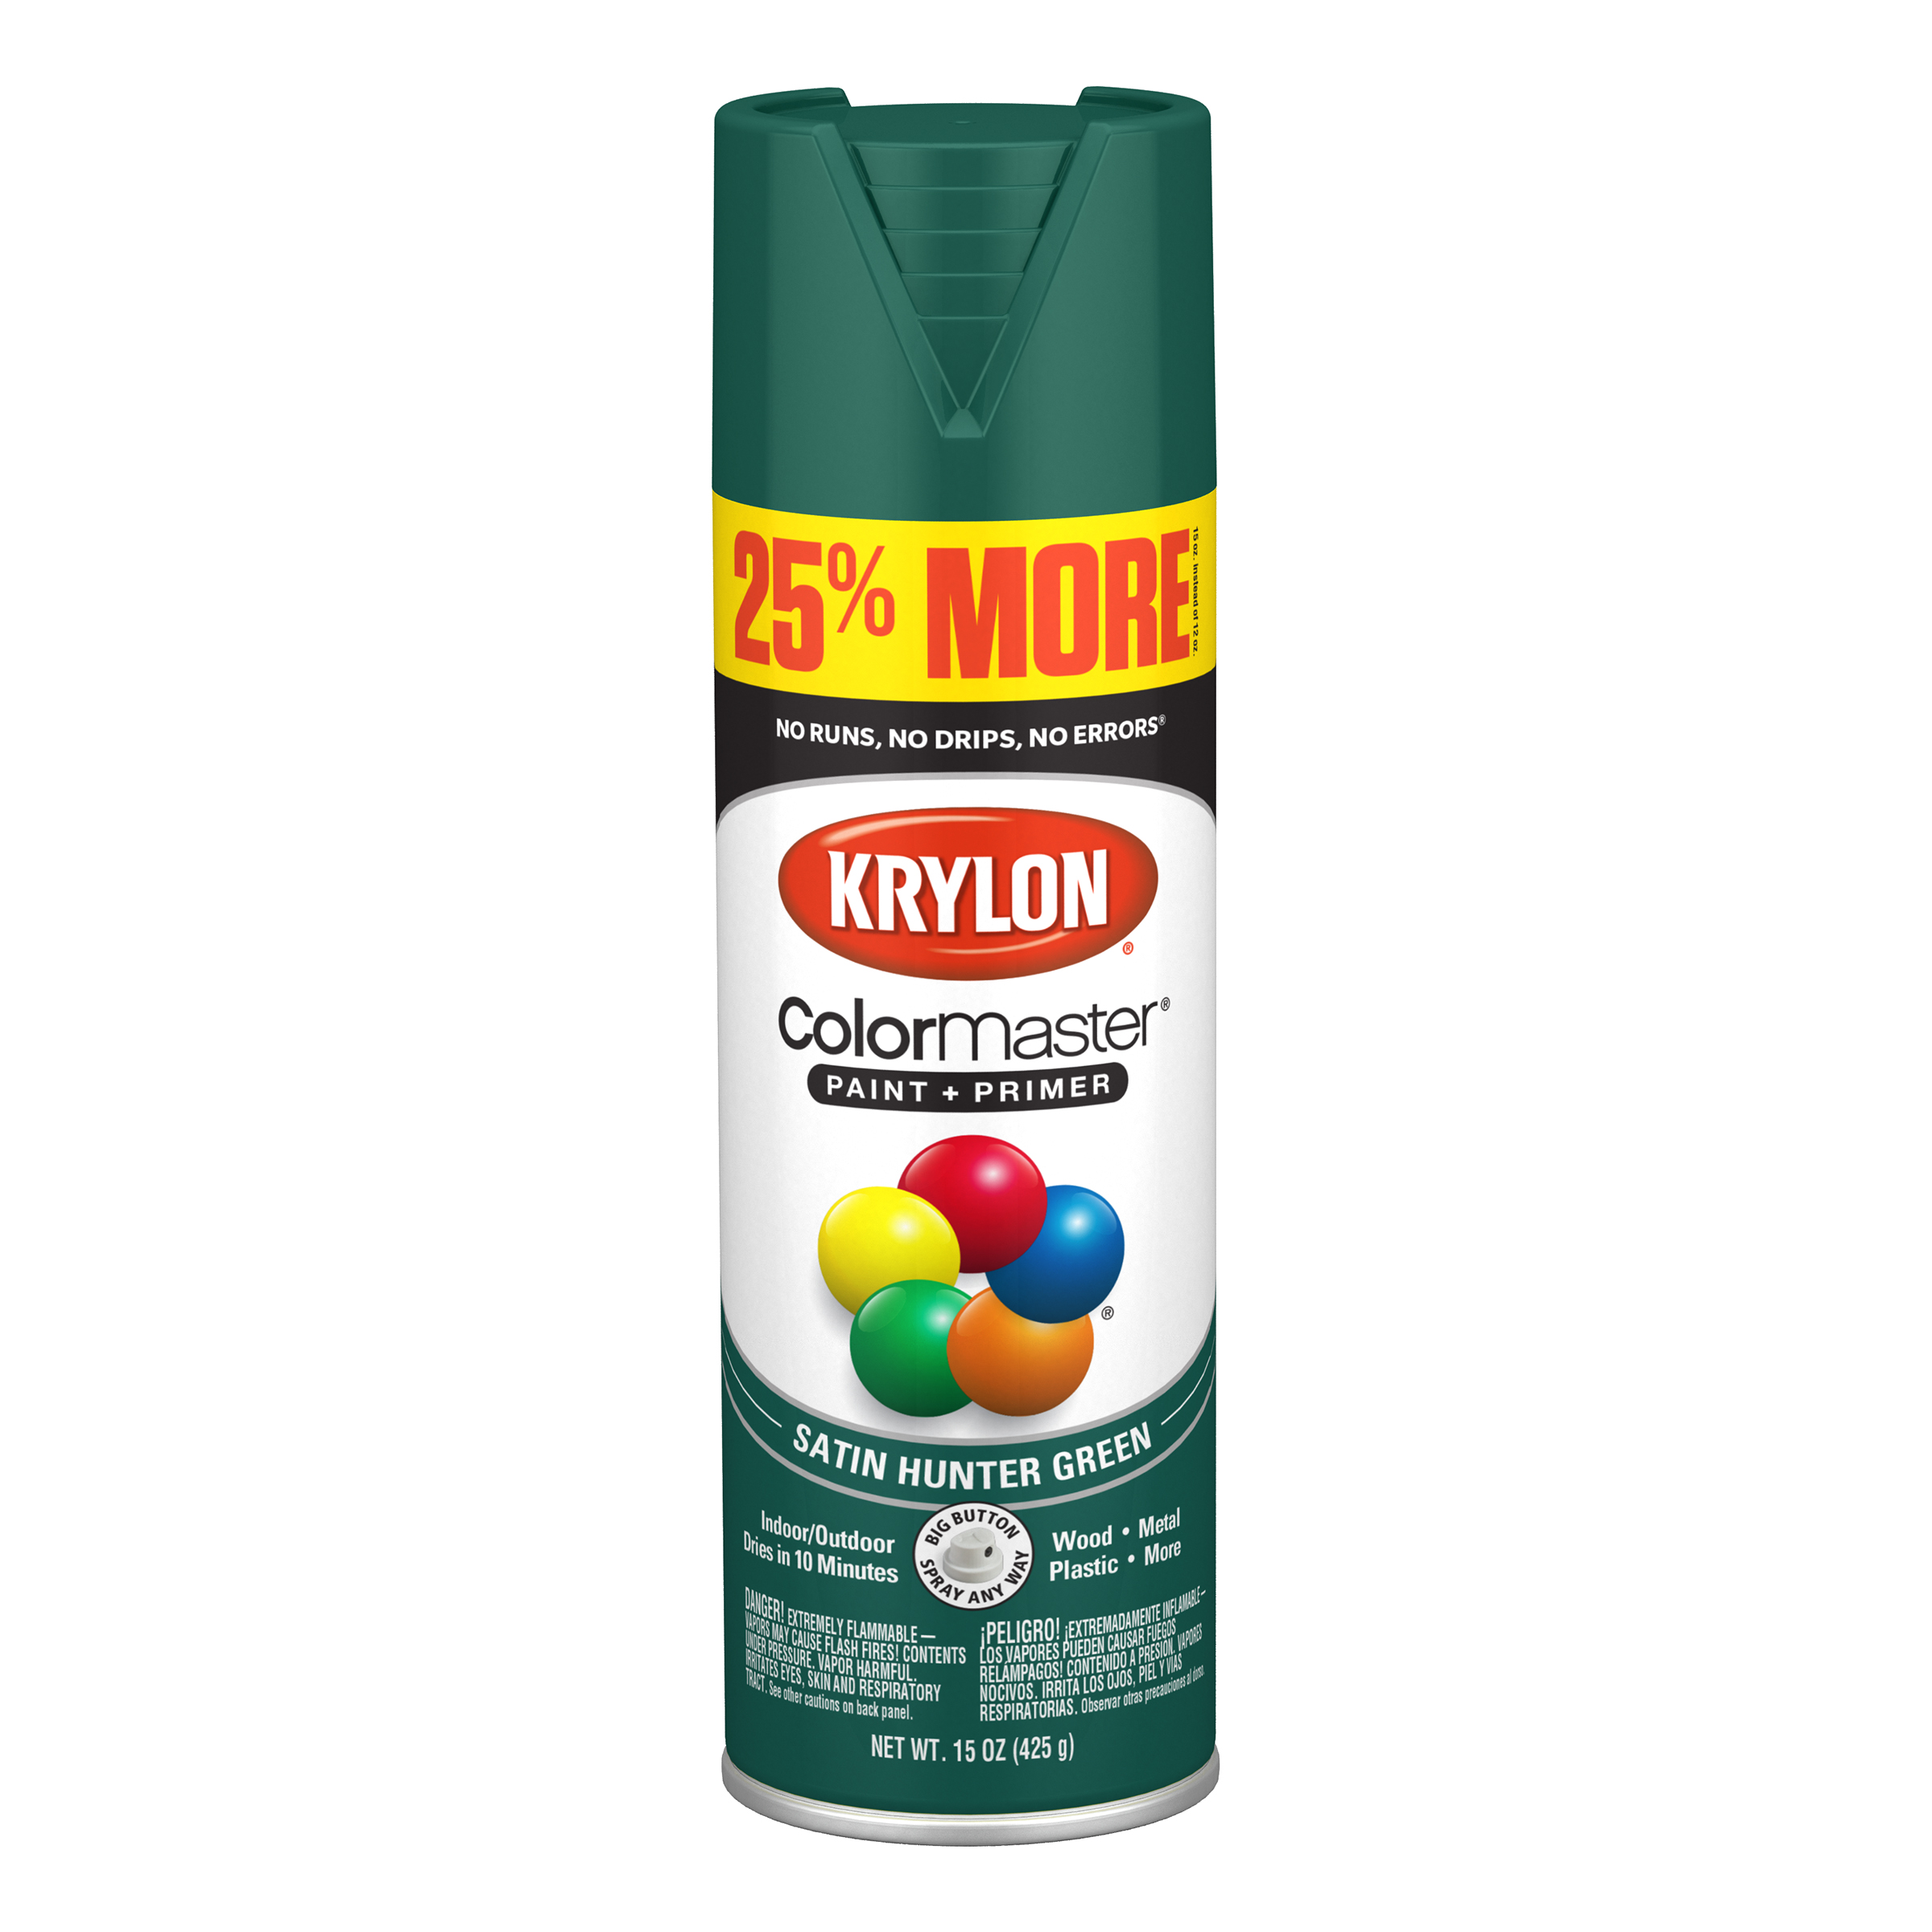 Krylon® ColorMaster Paint + Primer Satin Hunter Green, 15-Oz